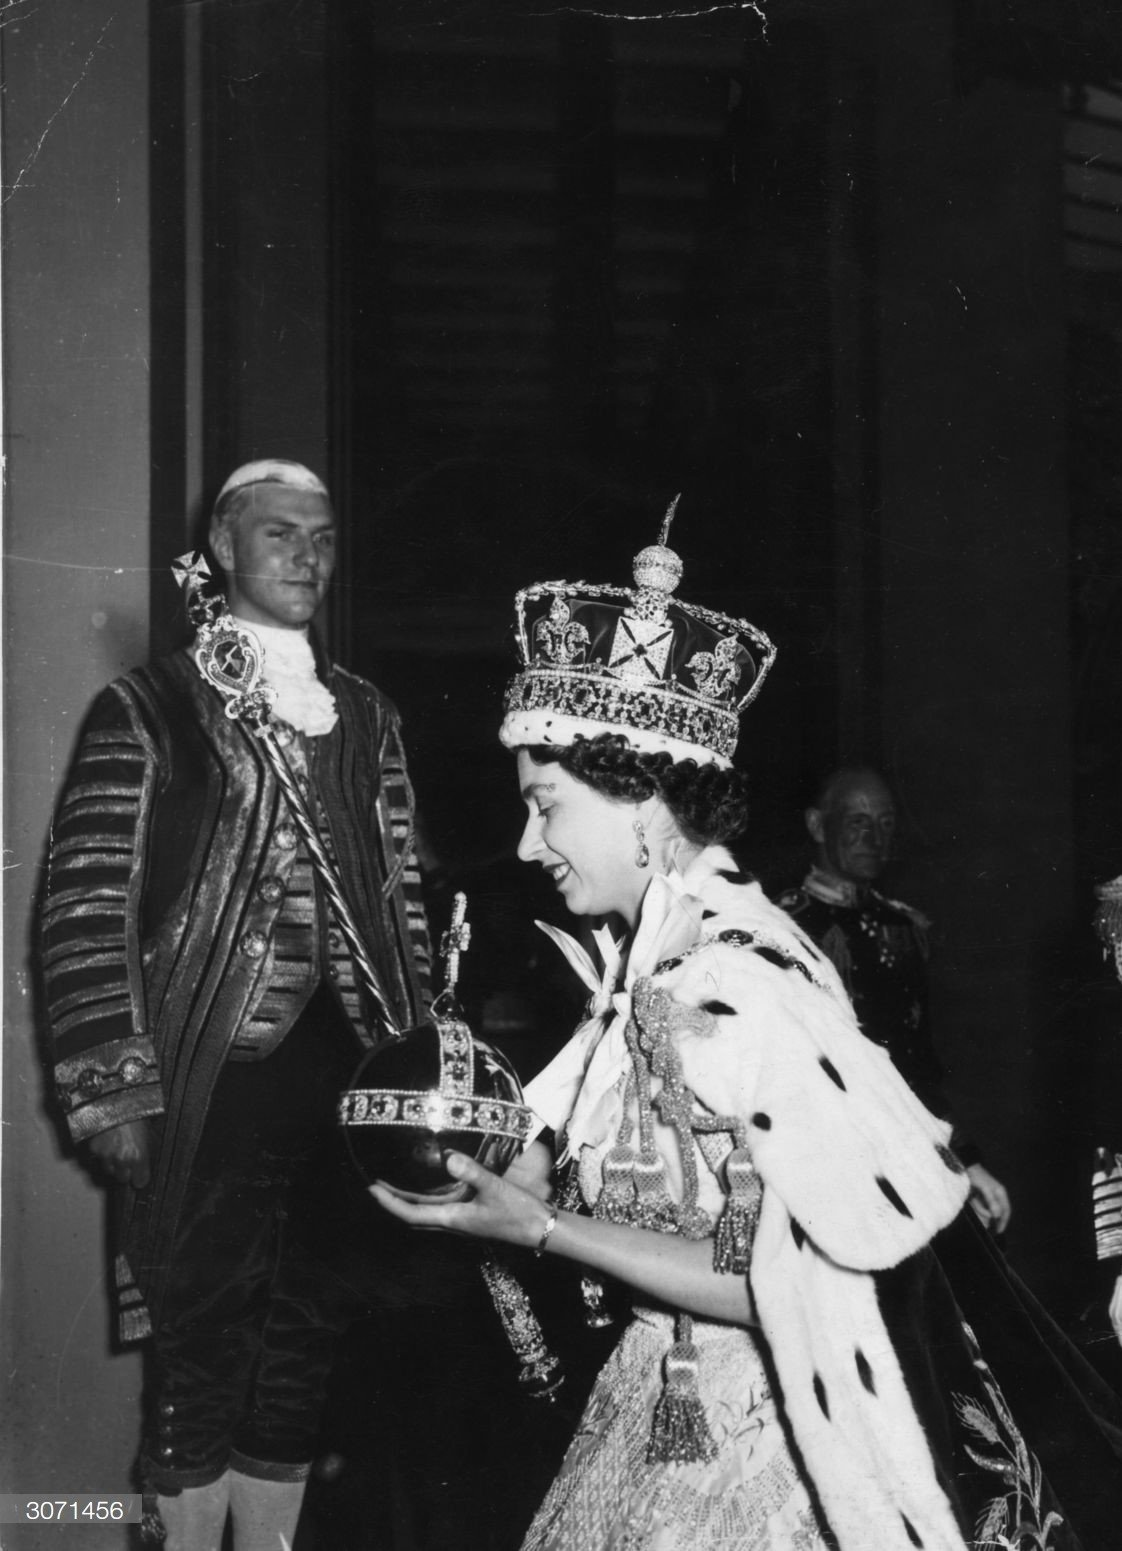 Queen Elizabeth II, wearing the Imperial State crown and carrying the Orb and Sceptre, returns to Buckingham Palace following her Coronation on 2nd June 1953.   Source: Getty Images